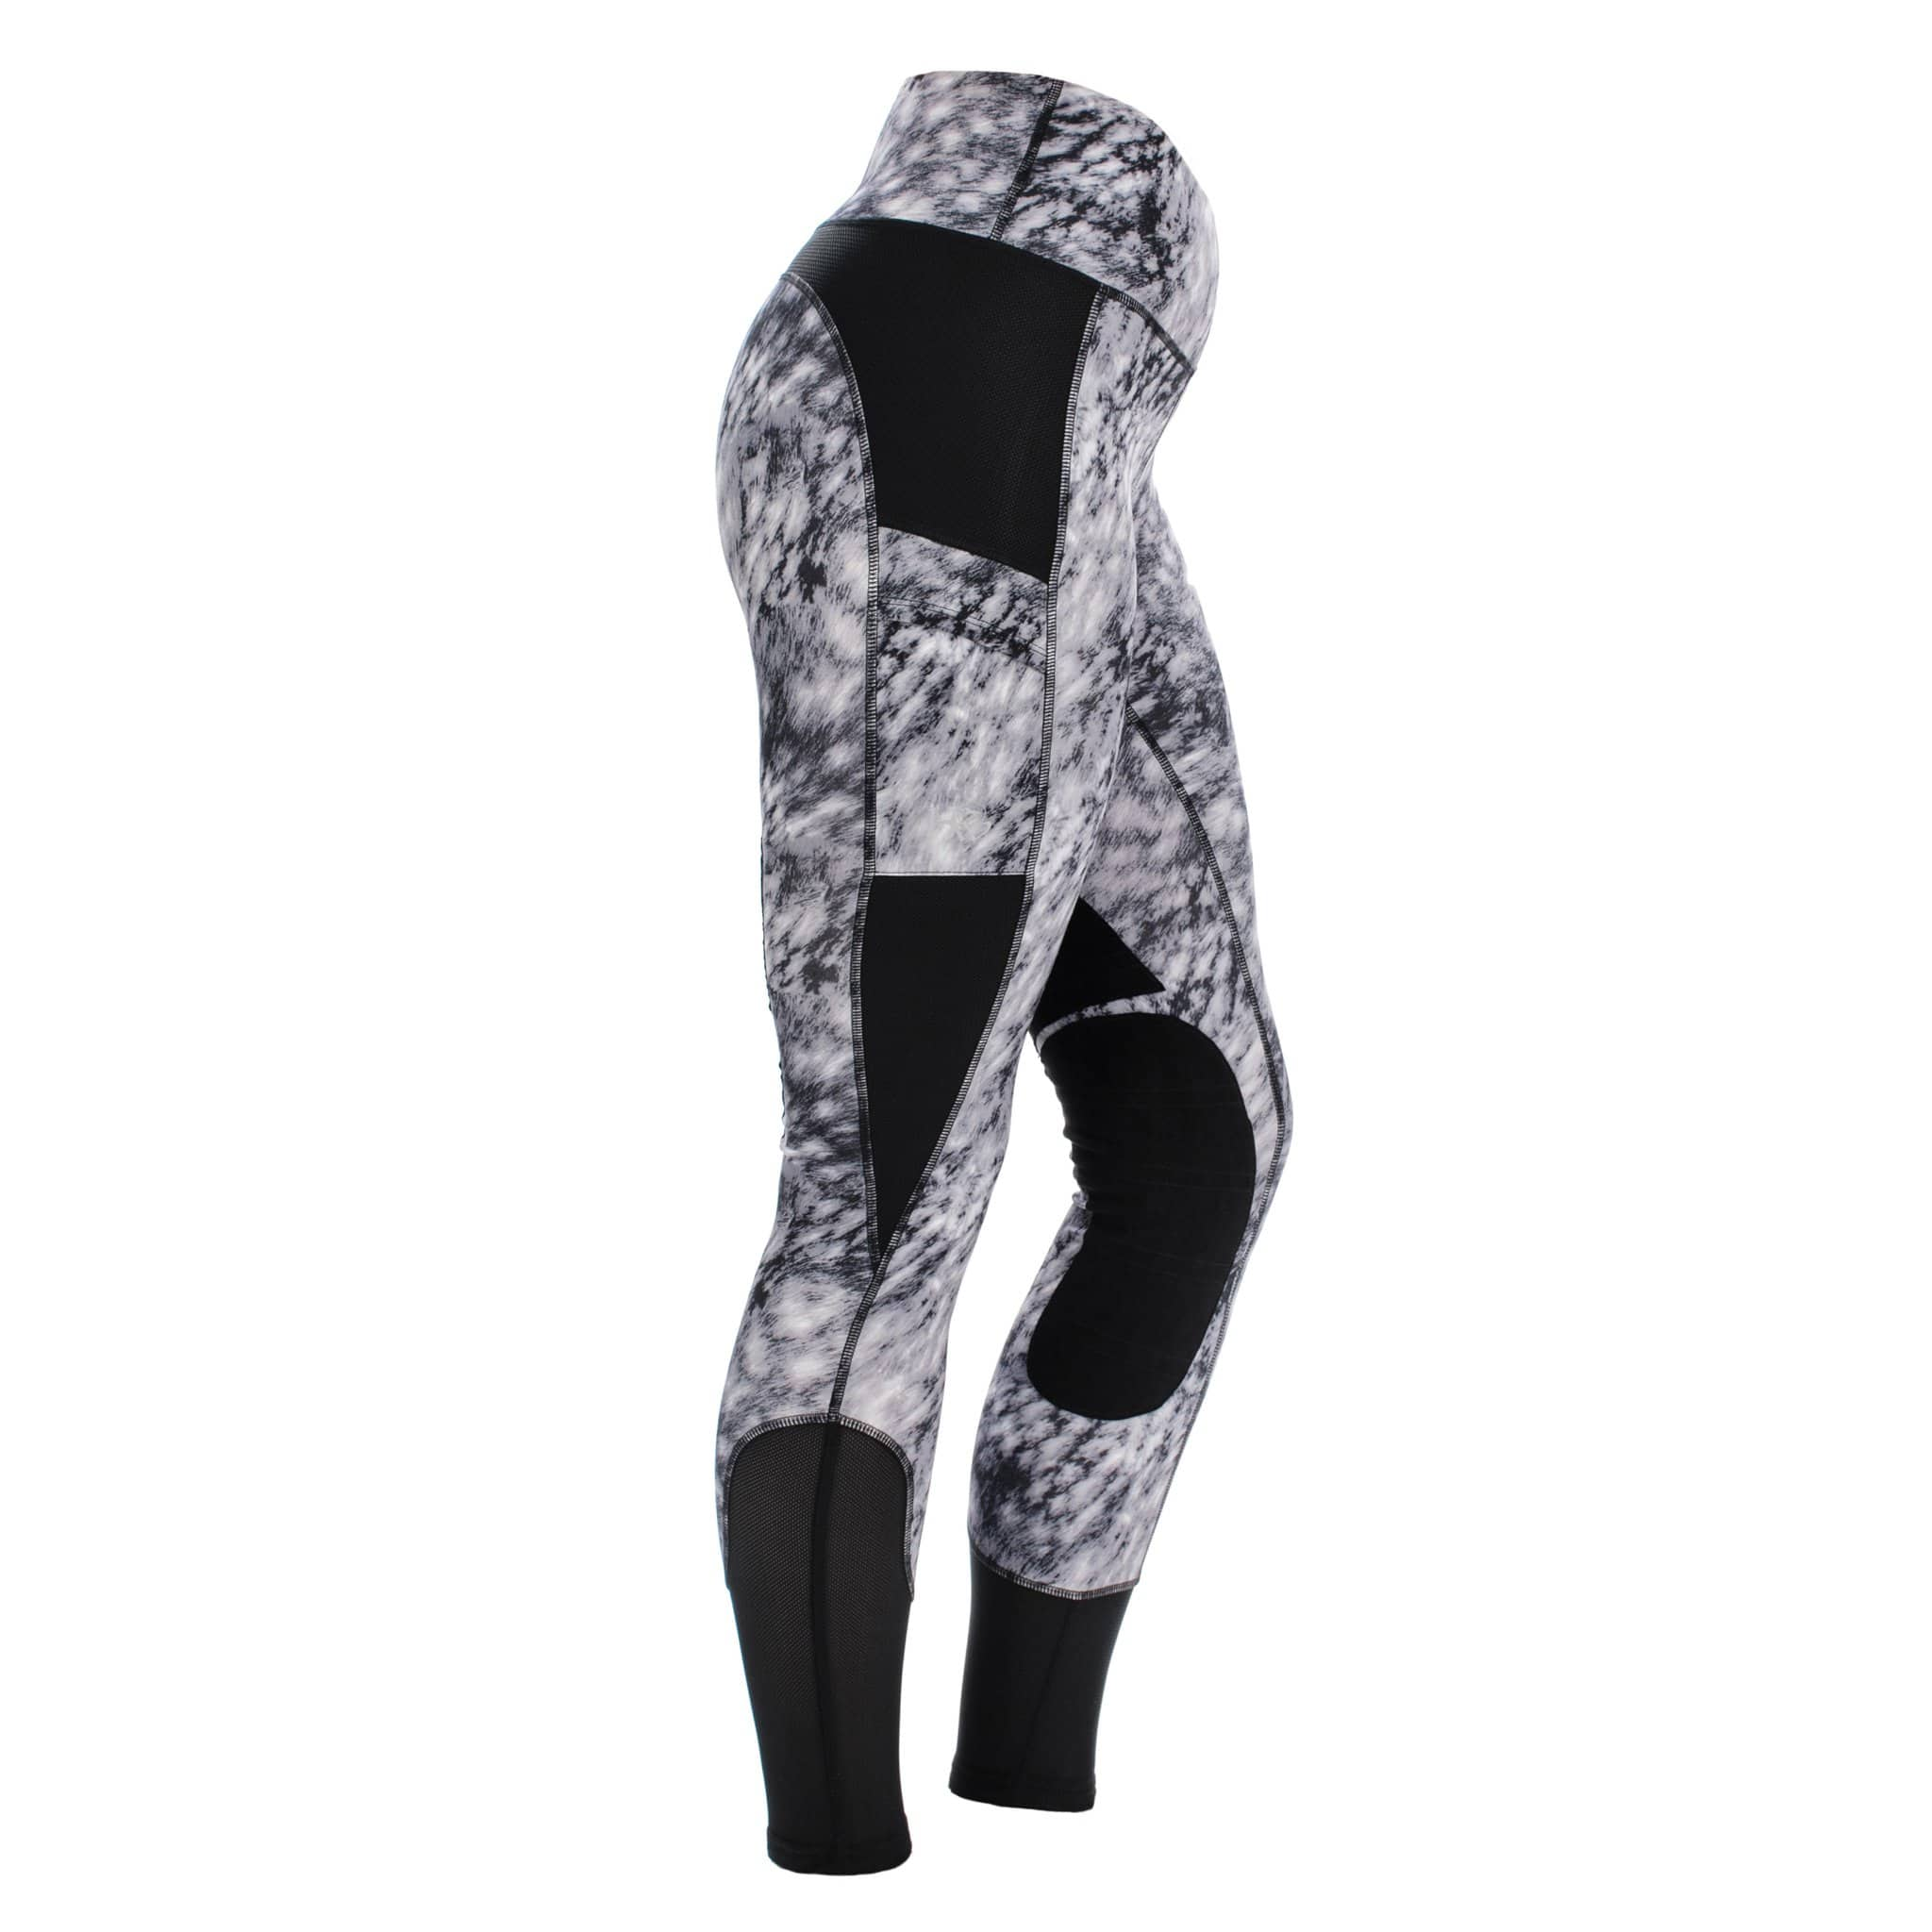 CLHRTS Horseware Riding Tights Dapple Print Side